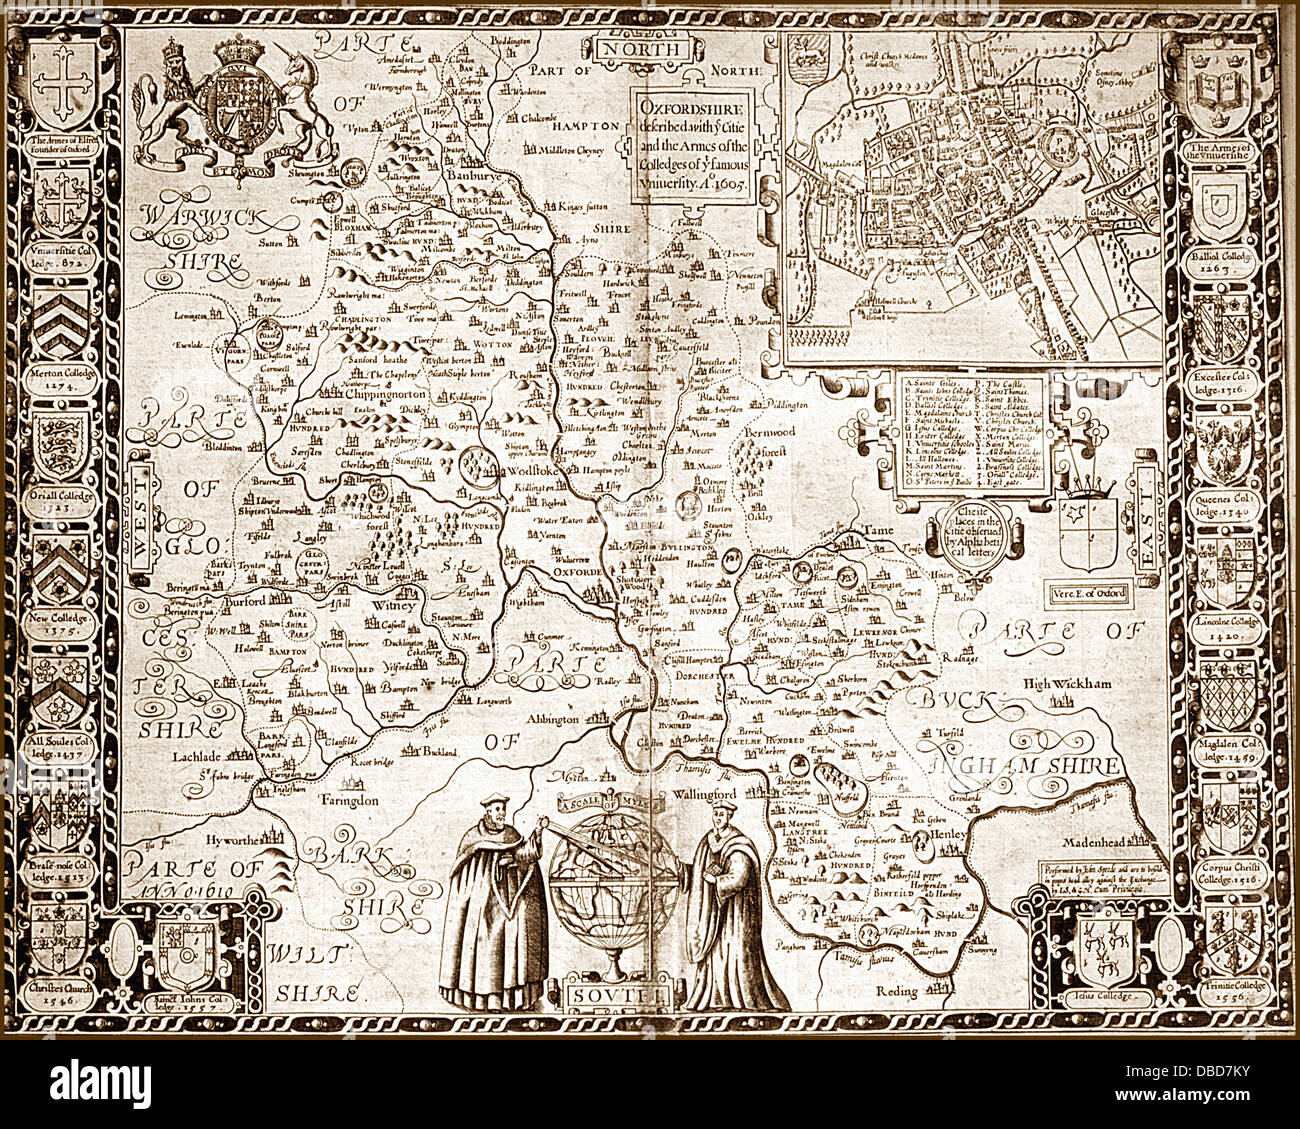 17th Century (1605) Map of Oxfordshire - Stock Image